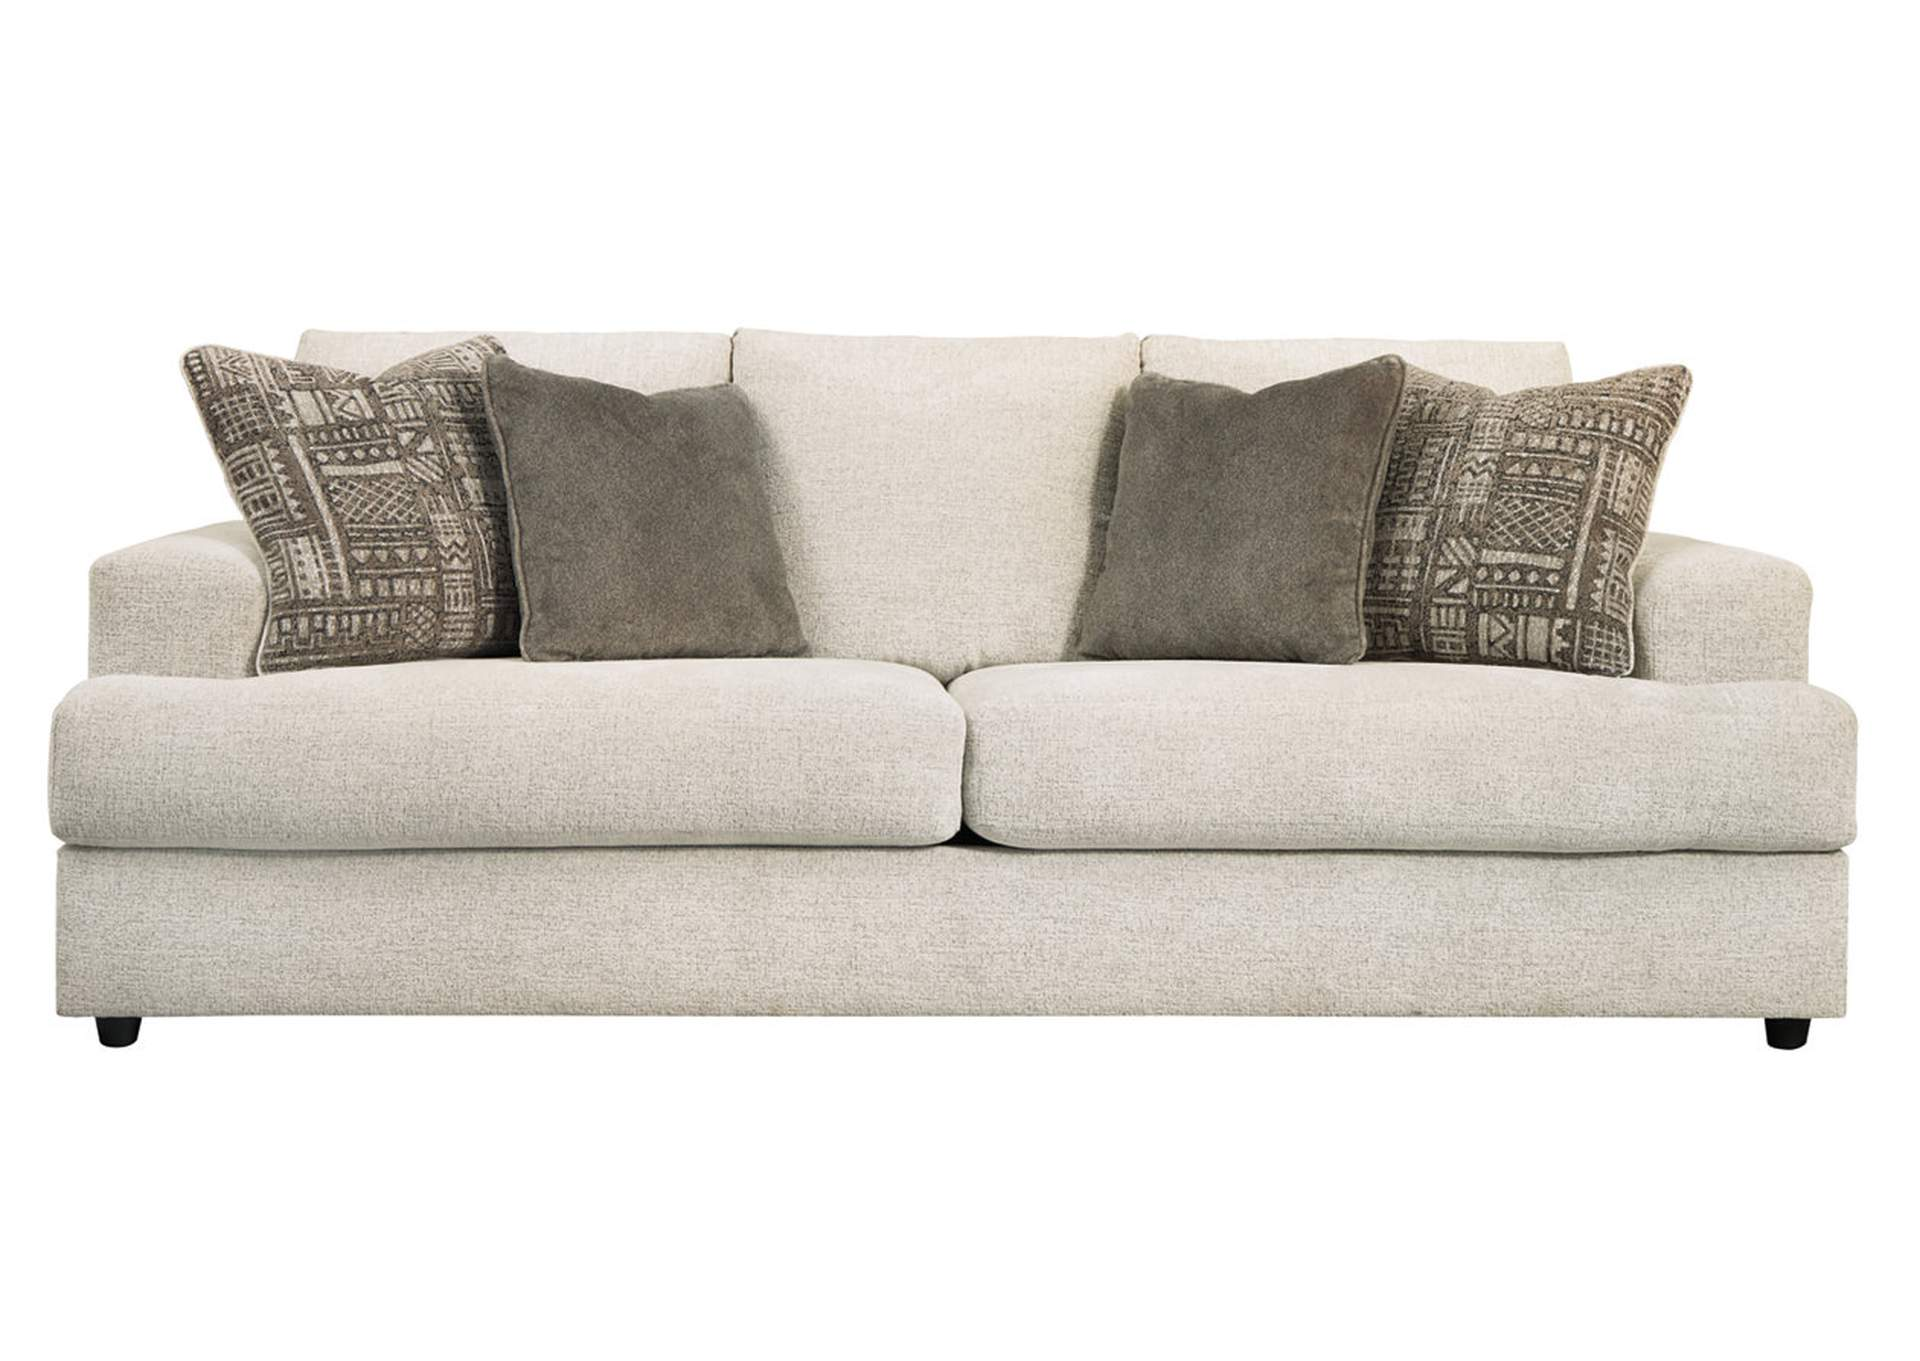 Soletren Stone Sofa,Signature Design By Ashley